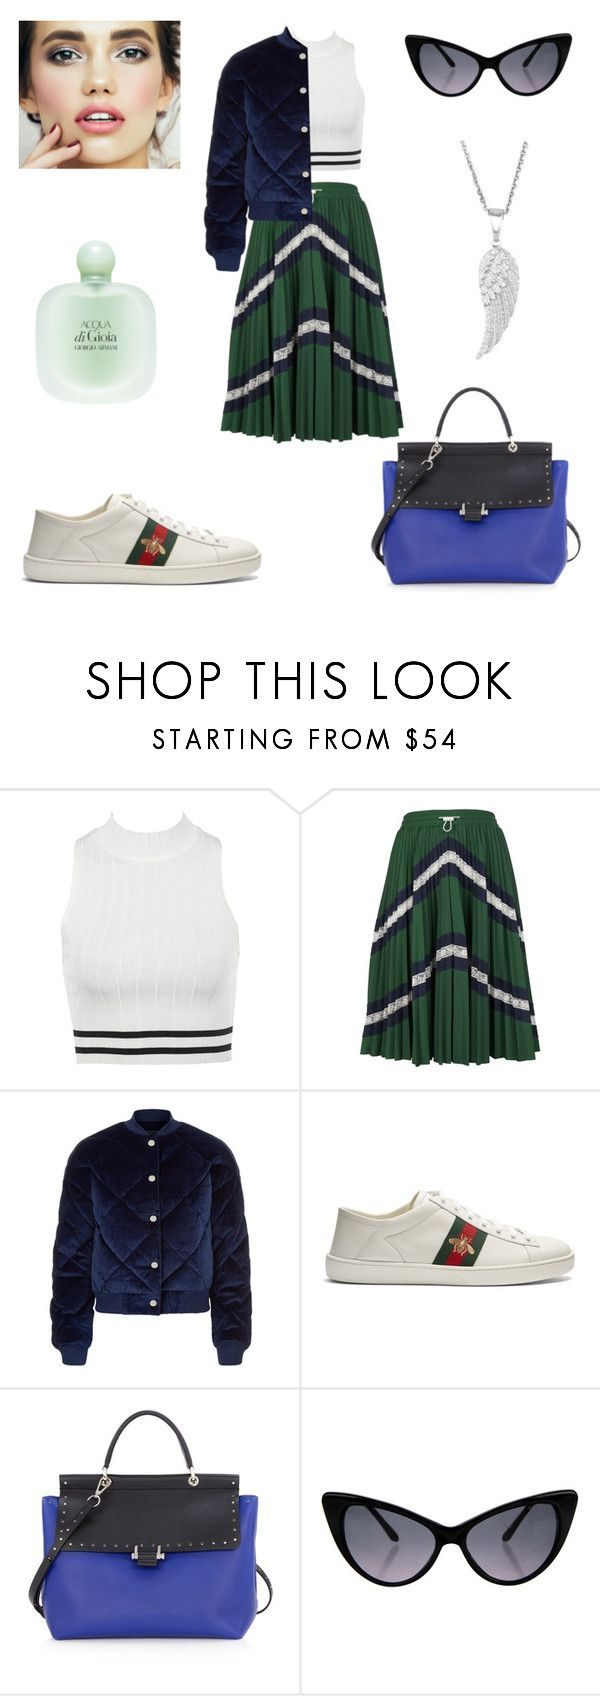 """Sport in the city 🤸‍♀️🤸‍♀️🤸‍♀️"" by sleepintheclouds ❤ liked on Polyvore featuring Valentino, Maje, Gucci, Lanvin, Tom Ford, Giorgio Armani, sportchic, sportlook, polyvorefashion and Polyvoreoutfits"